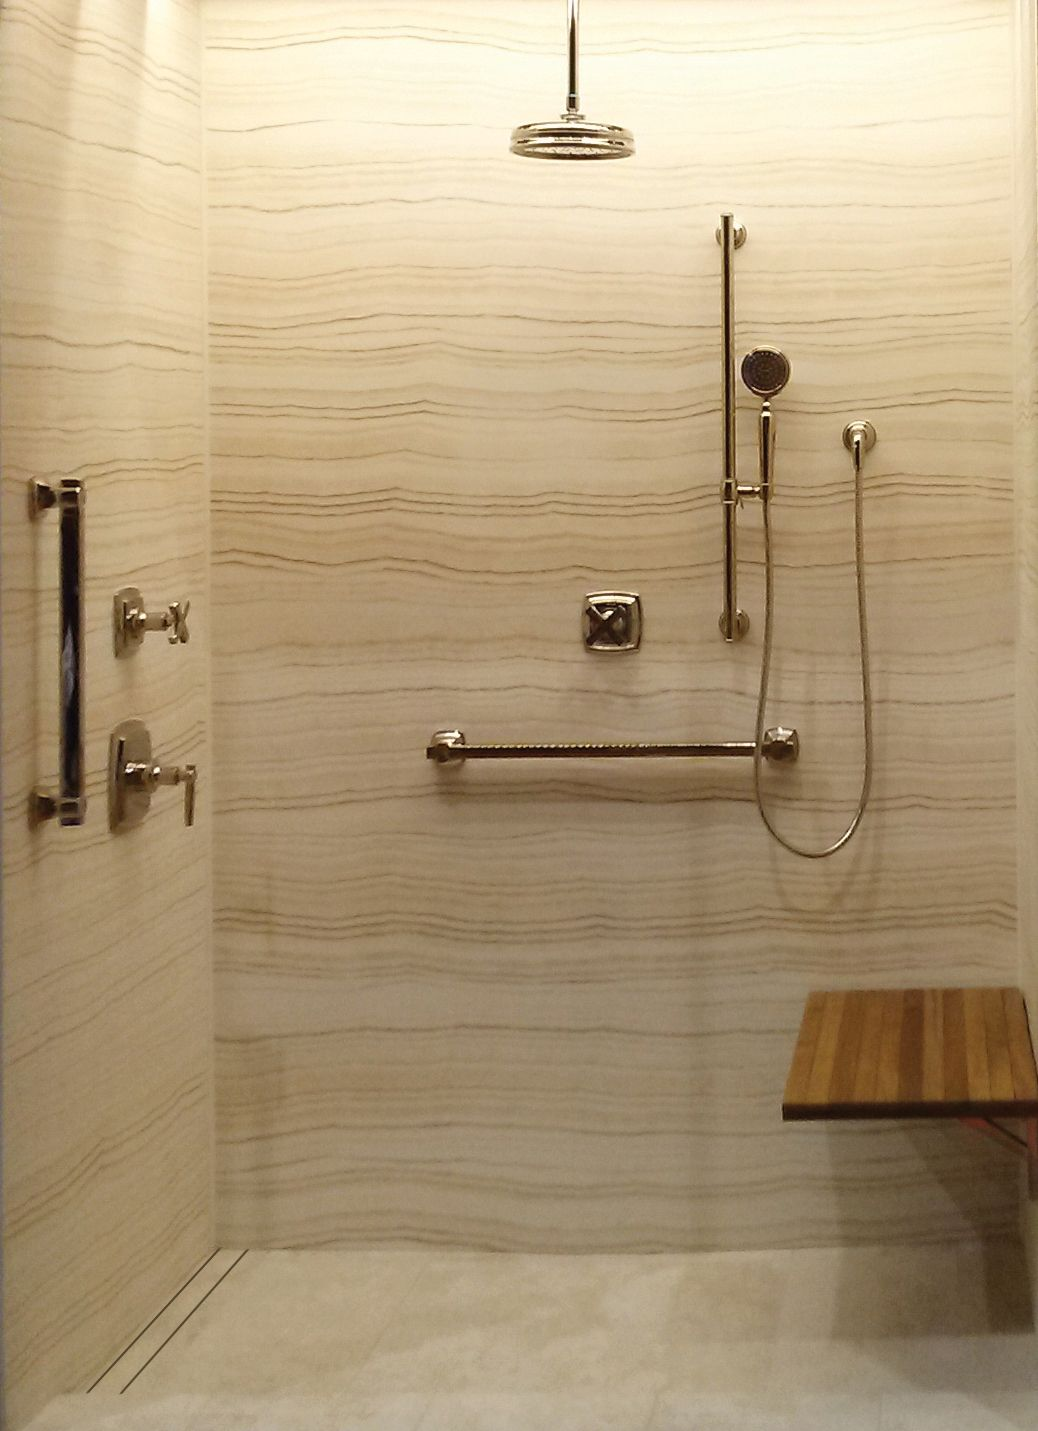 Grab Bars, Handheld Shower Heads And Shower Seats Are Additions That Make  Any Bathroom Safer And Easier To Use.